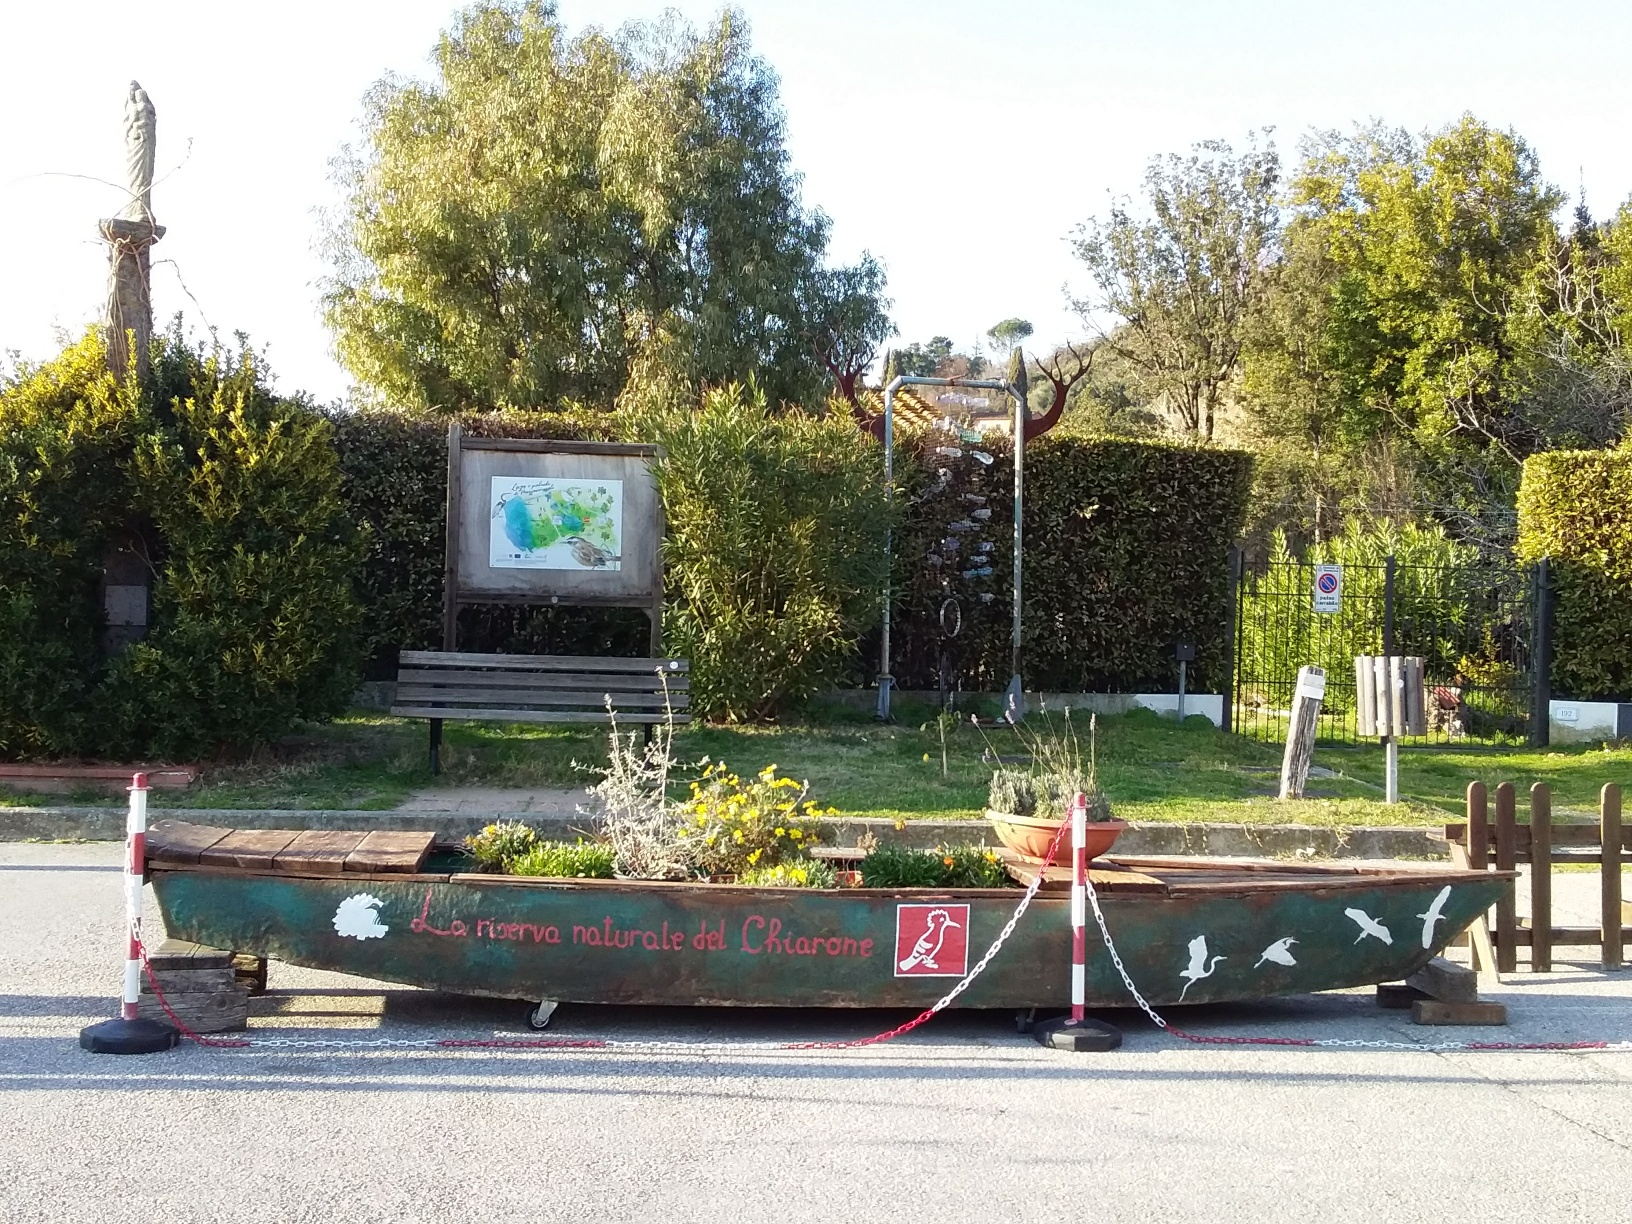 The entrance to the Oasi LIPU wetlands at Lake Massaciuccoli